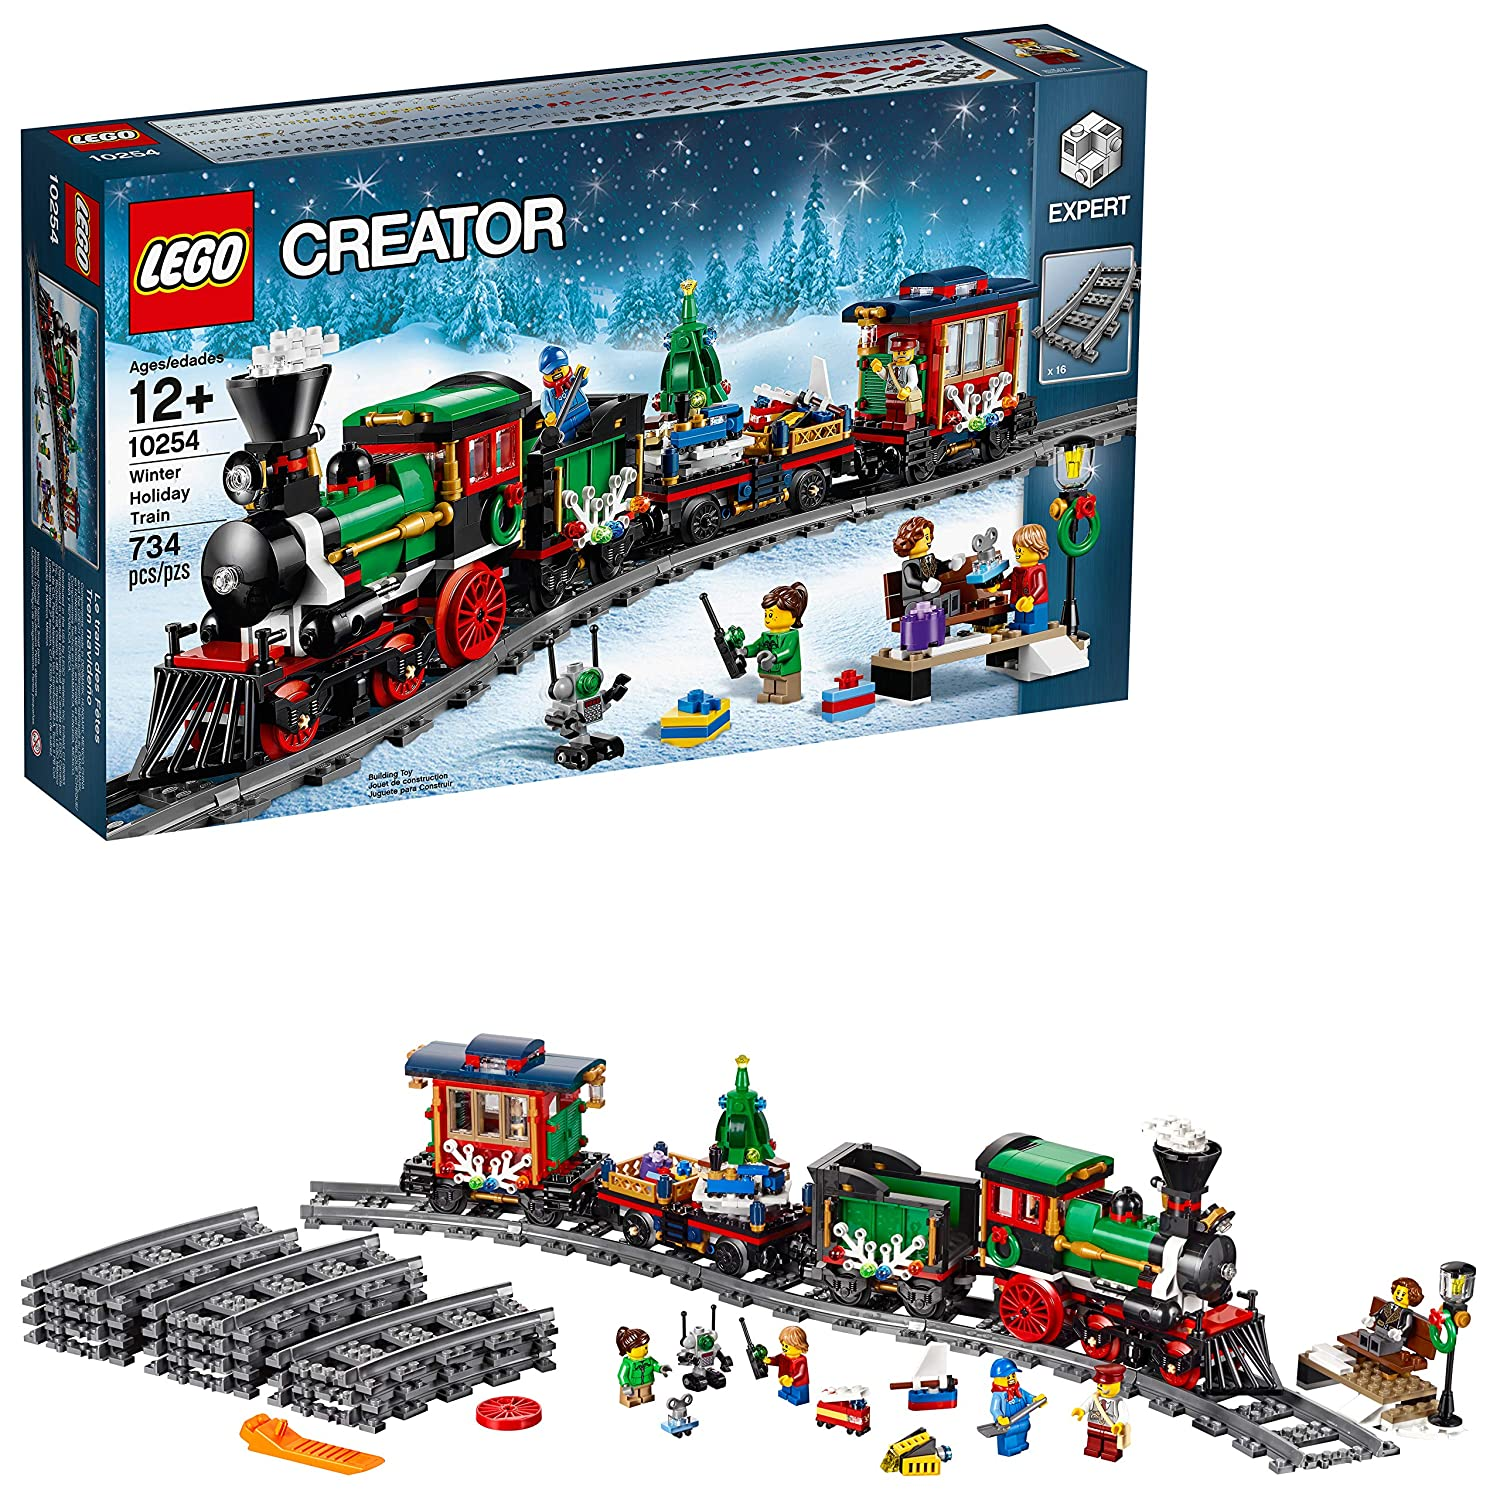 Christmas Train Set.Lego Creator Expert Winter Holiday Train 10254 Christmas Train Set With Full Circle Train Track Locomotive And Spinning Christmas Tree Toy 734